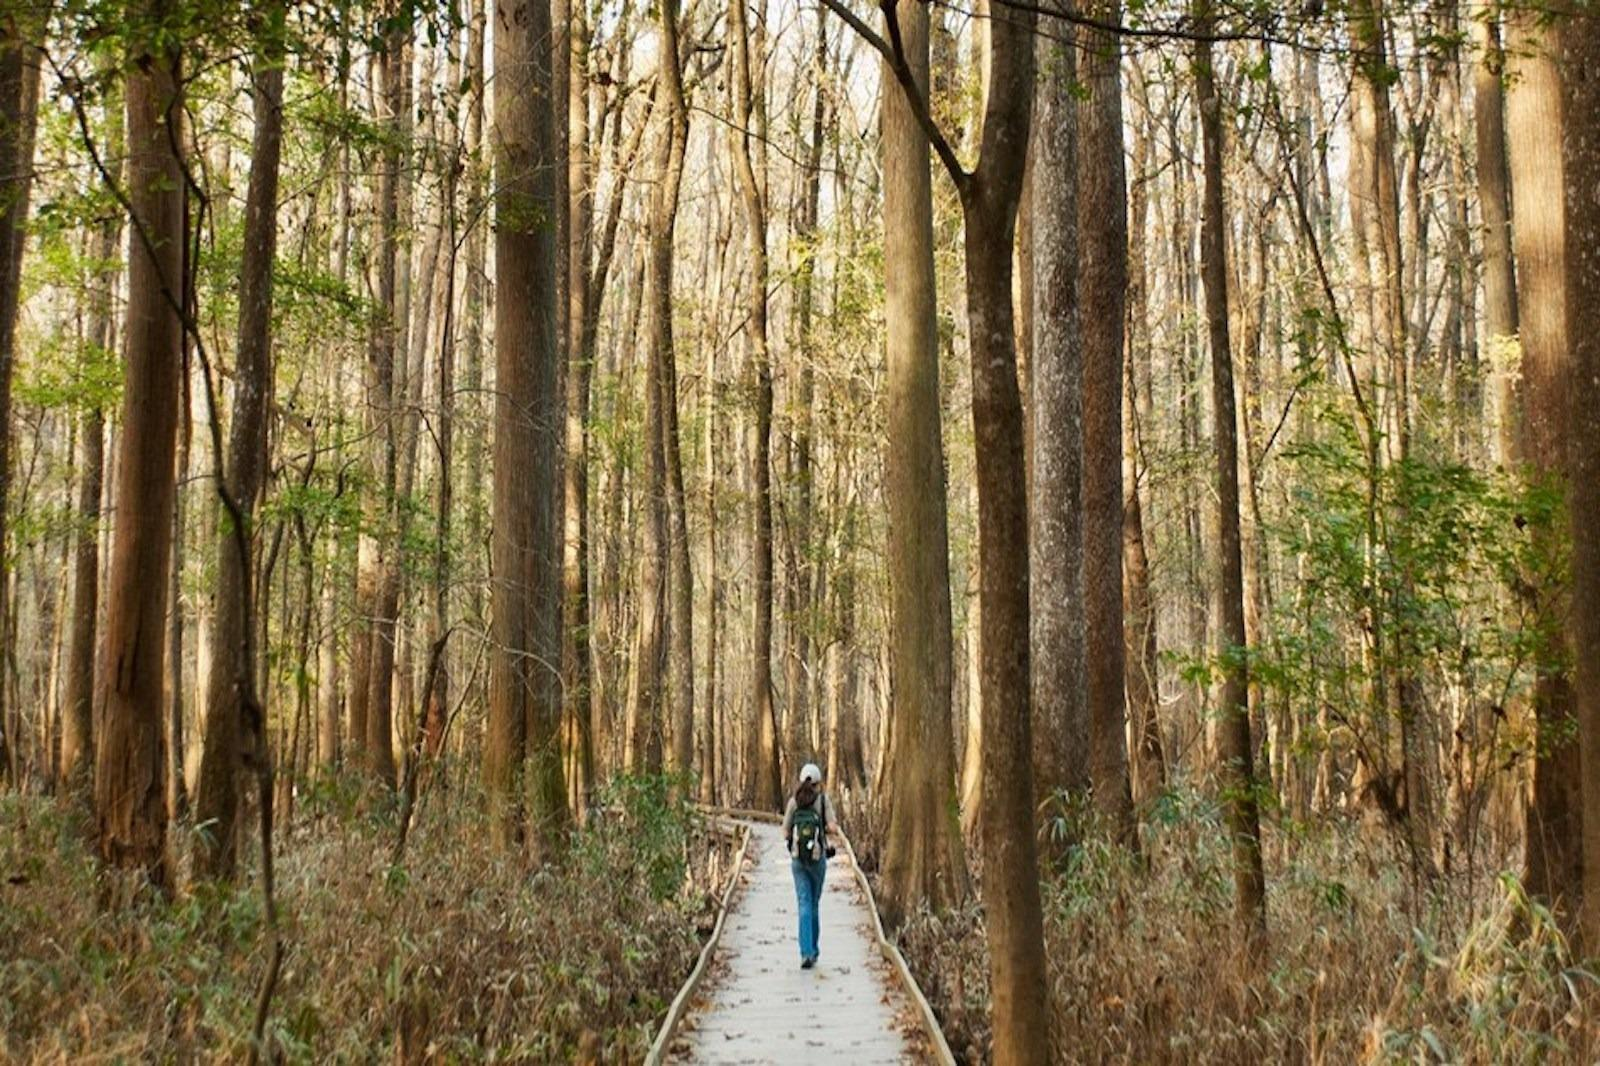 Congaree National Park, boardwalk, trees, forest